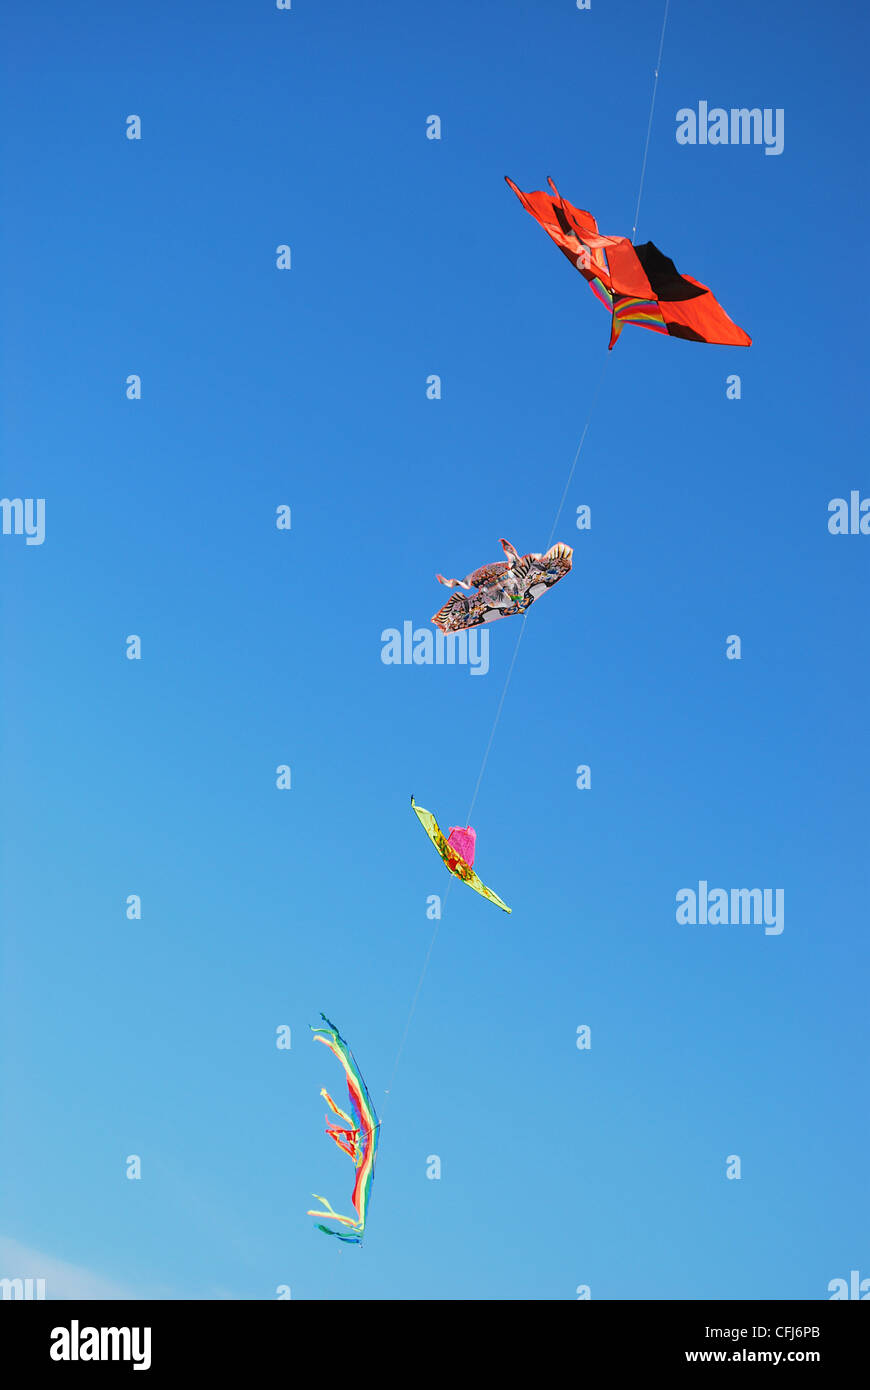 Series of colorful kites on blue sky, free space for text - Stock Image